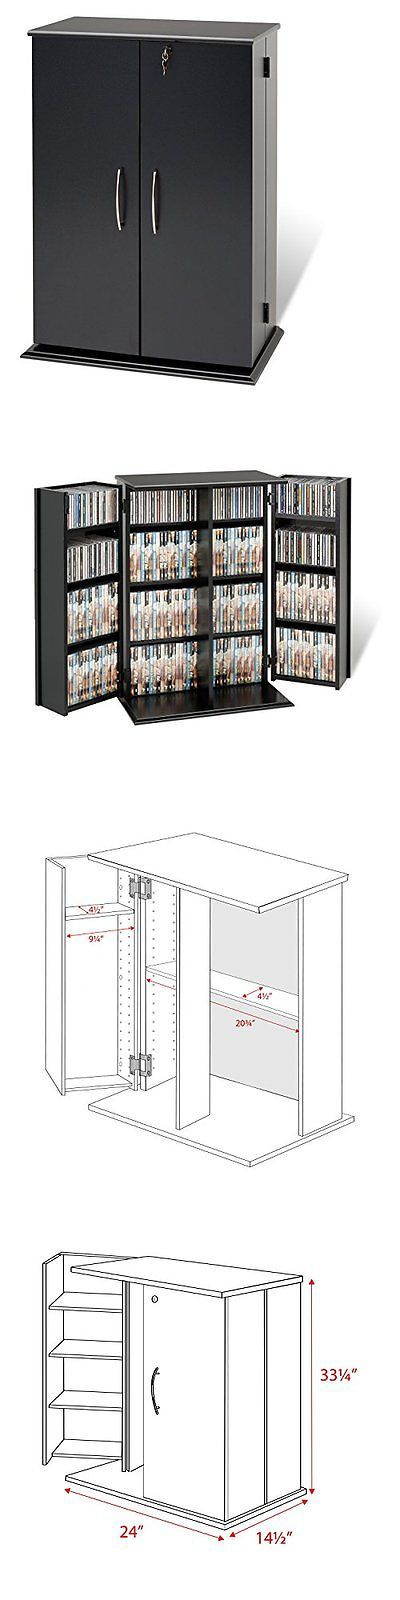 CD and Video Racks 22653: Media Storage Cabinet With Doors Drawers Cd Tower Dvd Shelf Rack Black Locking -> BUY IT NOW ONLY: $125.8 on eBay!